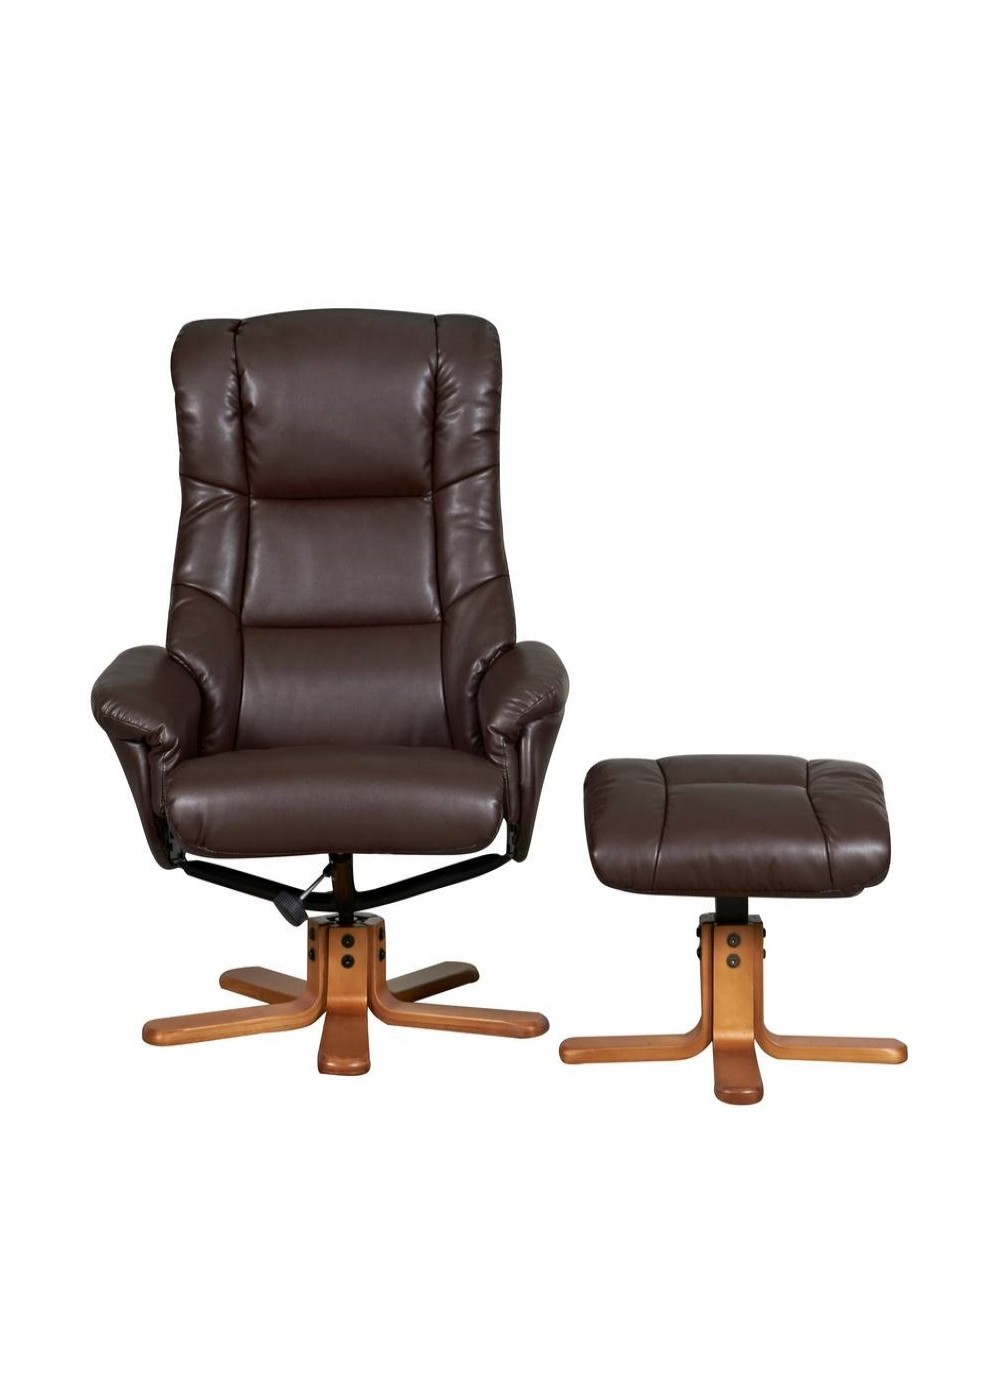 chicago luxury recliner 6922 nut brown 121 office furniture